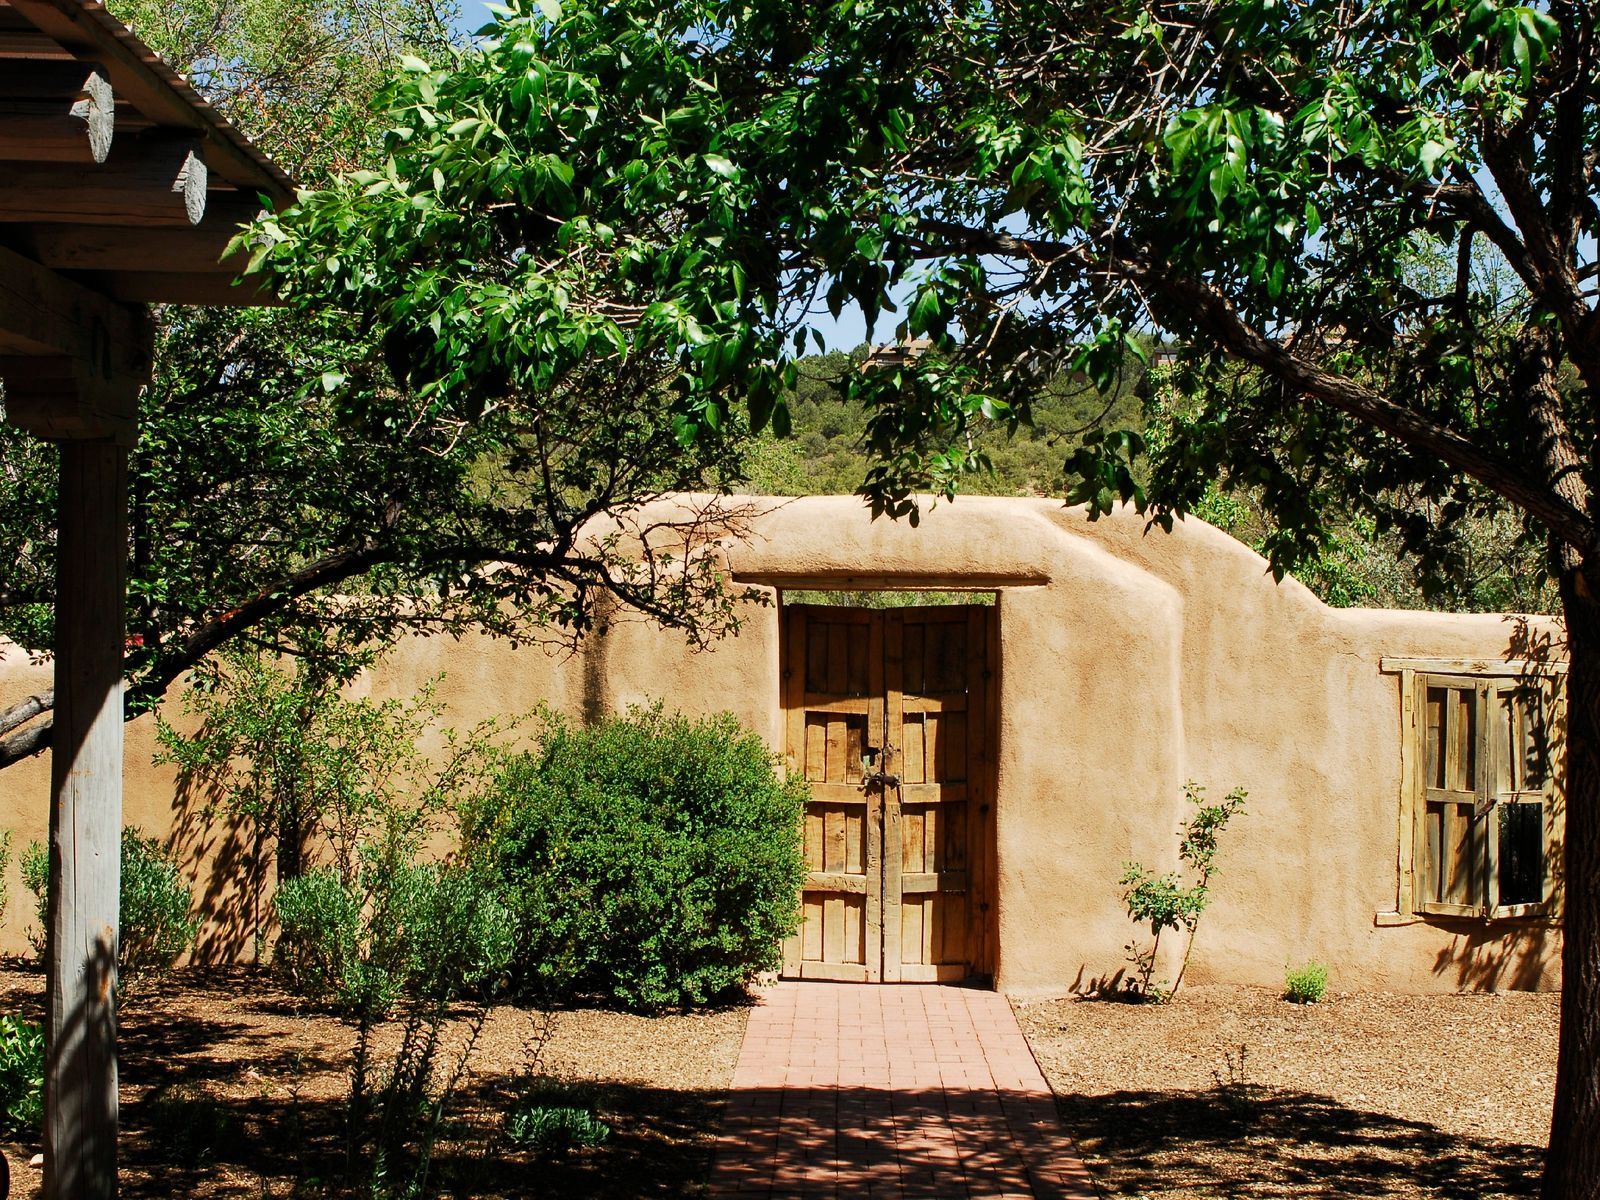 136 Valley Drive, Santa Fe NM Single Family Home - Santa Fe Real Estate